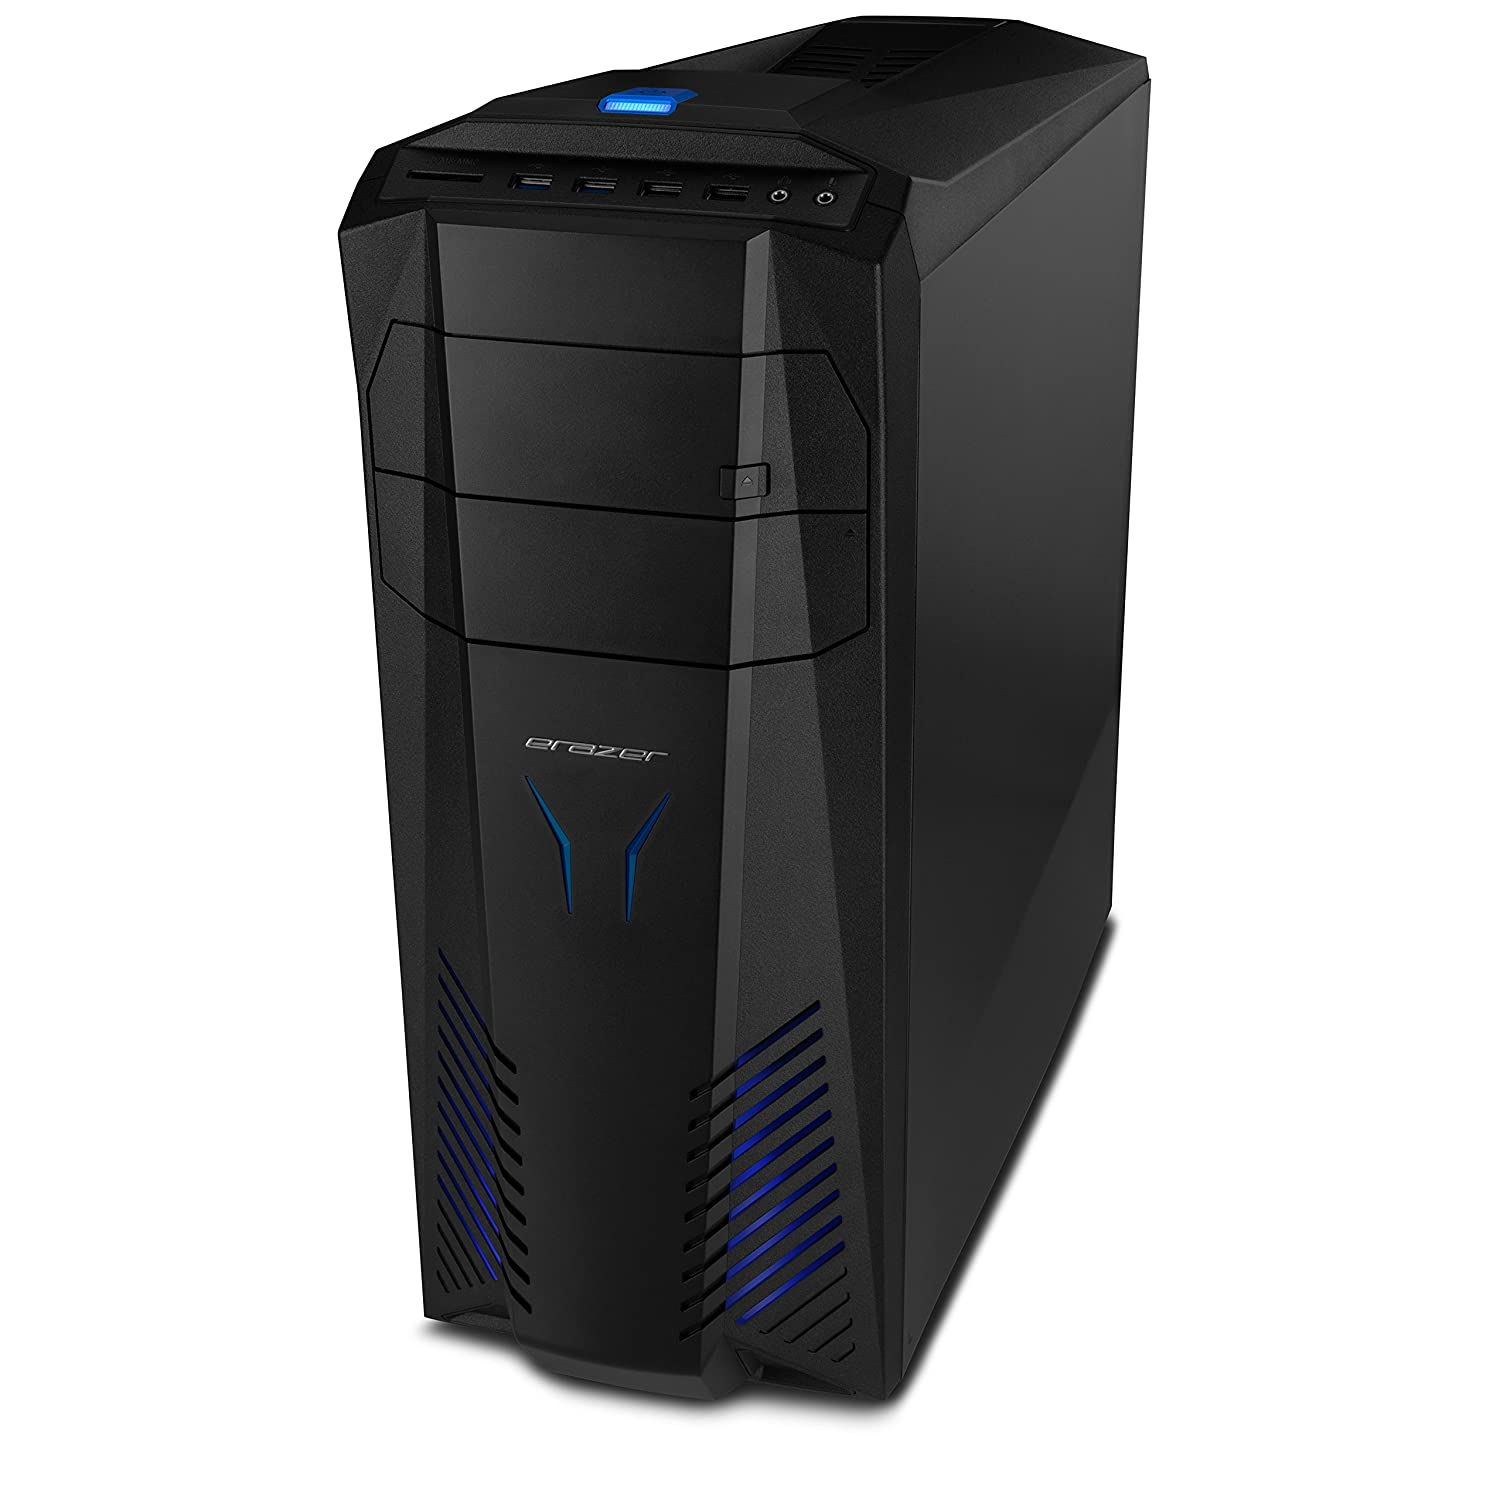 Medion X57 - Ordenador de sobremesa (Intel Core i5 2.7 GHz, 32 GB de RAM, 1 TB HDD + 240 GB SSD, nVidia GeForce GTX 1060 - 3 GB DDR5, Windows Home10) negro